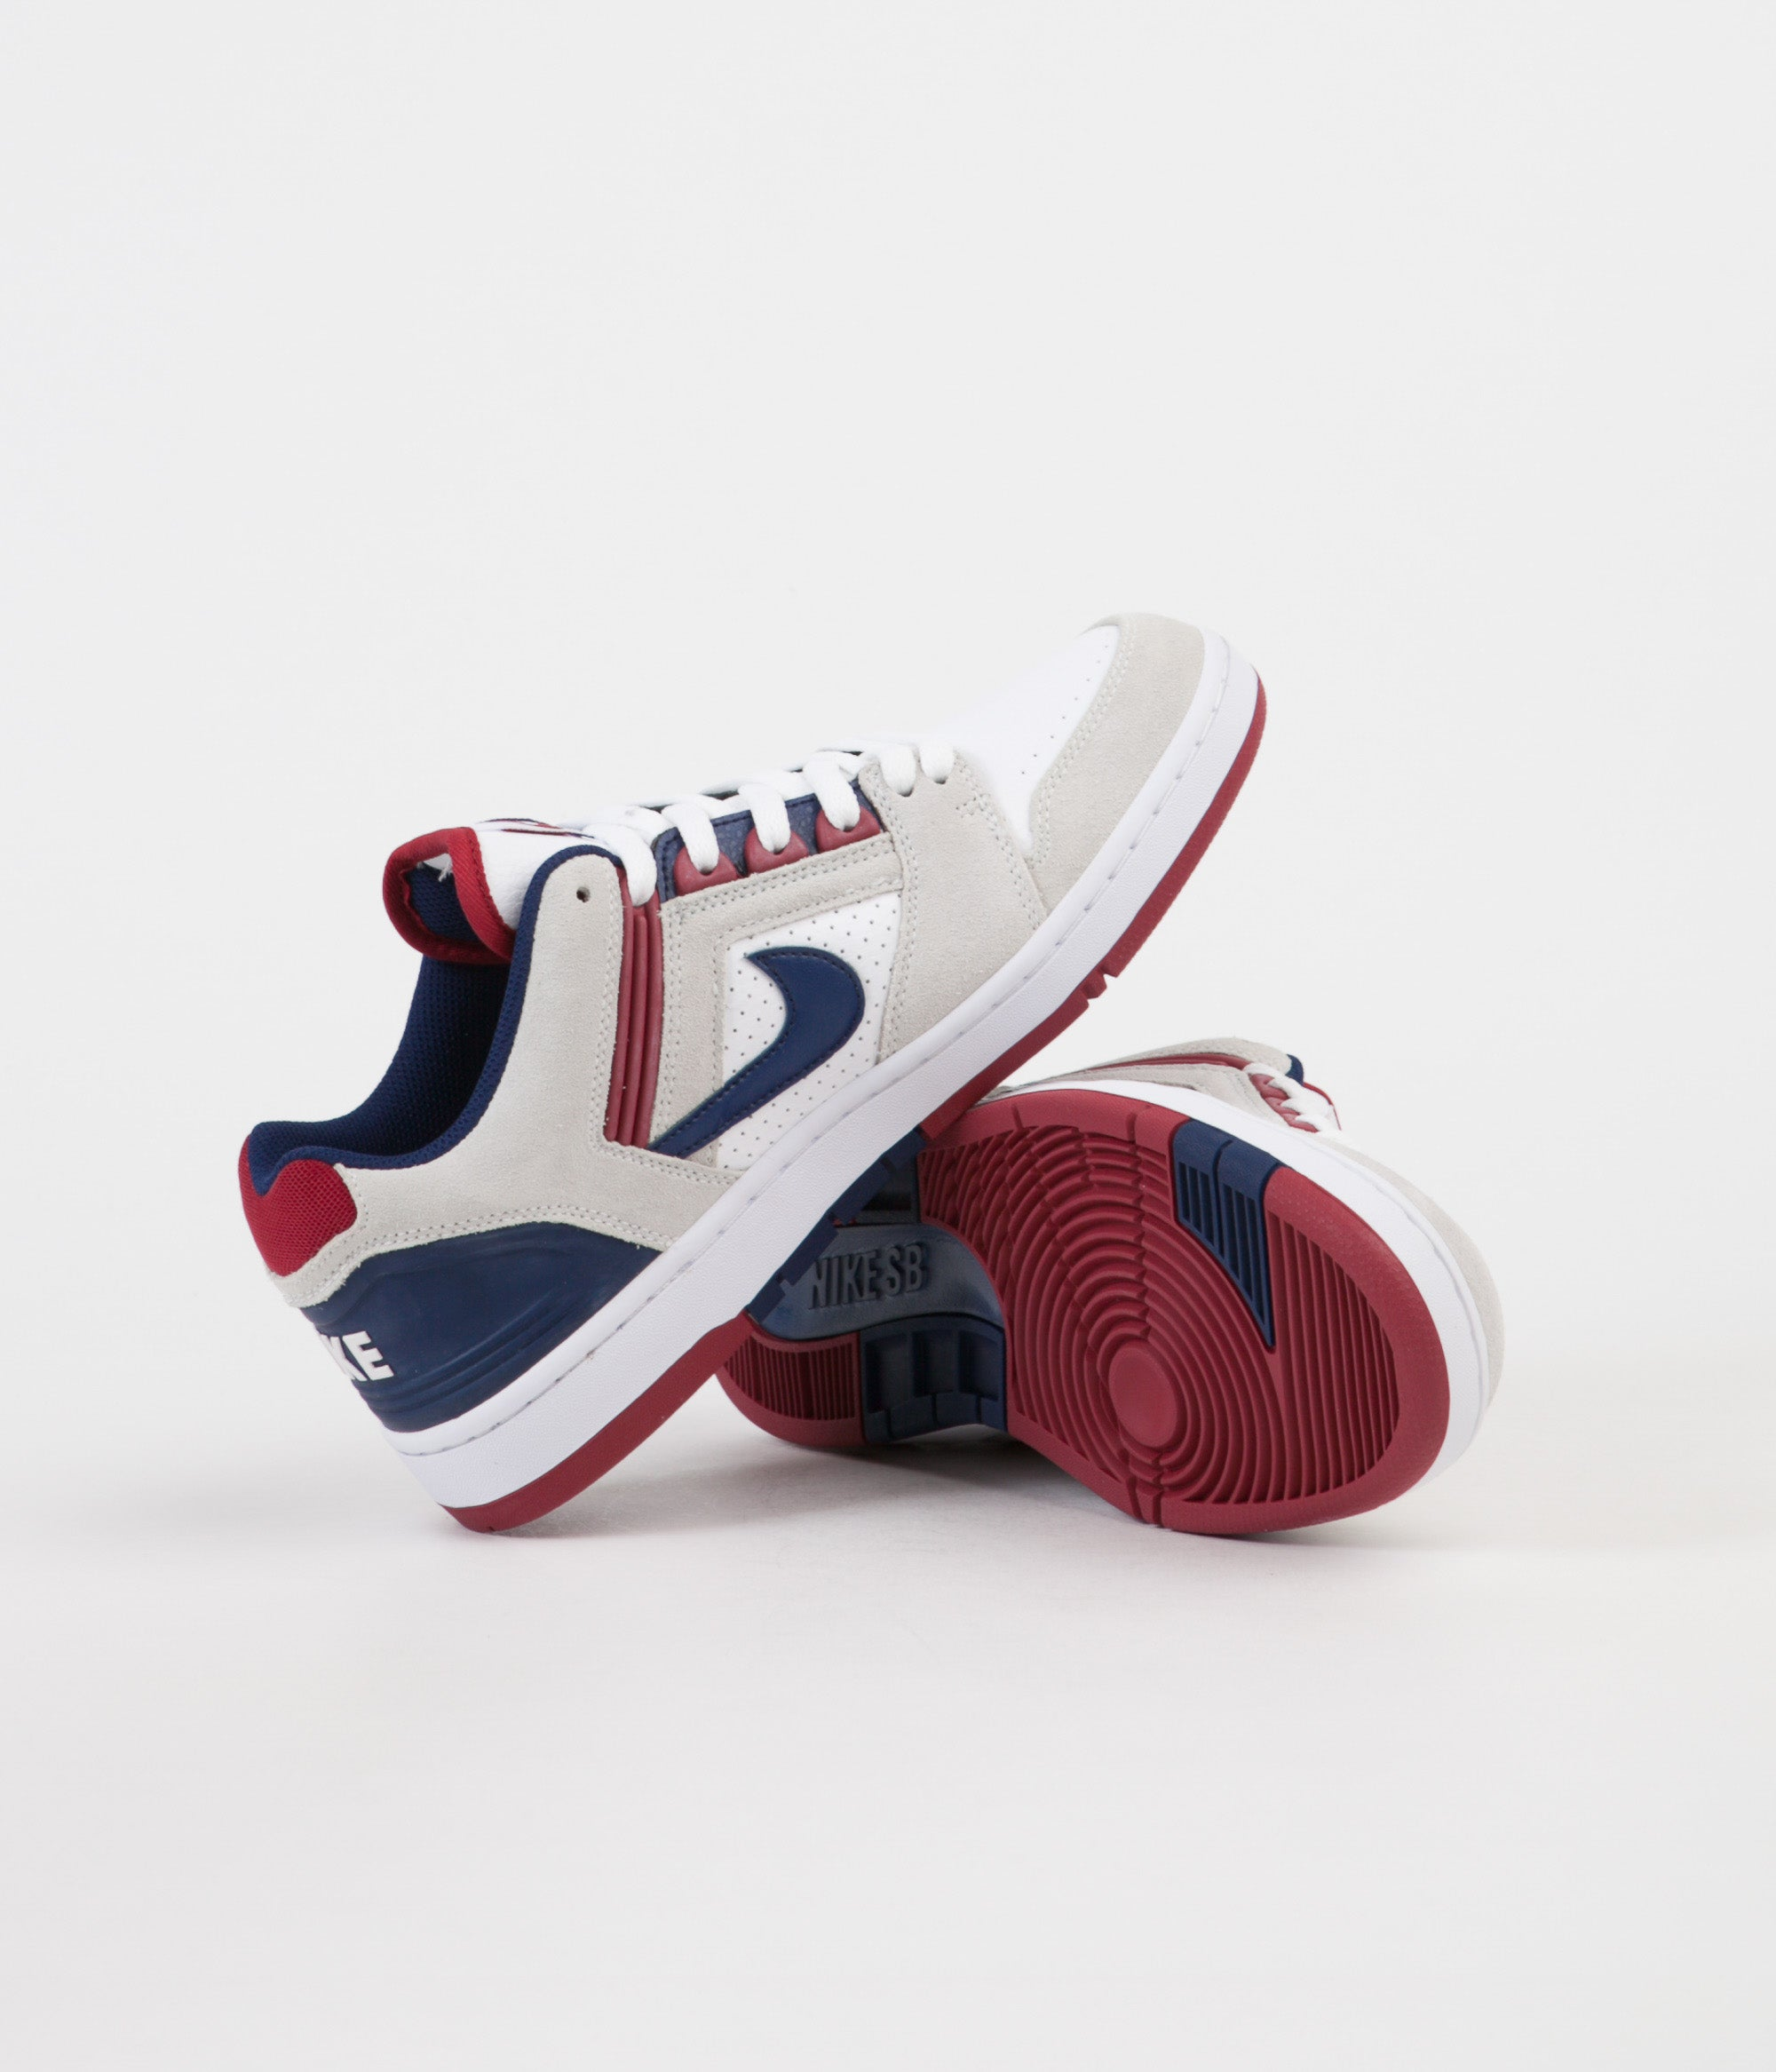 Nike SB Air Force II Low Shoes White Blue Void Red